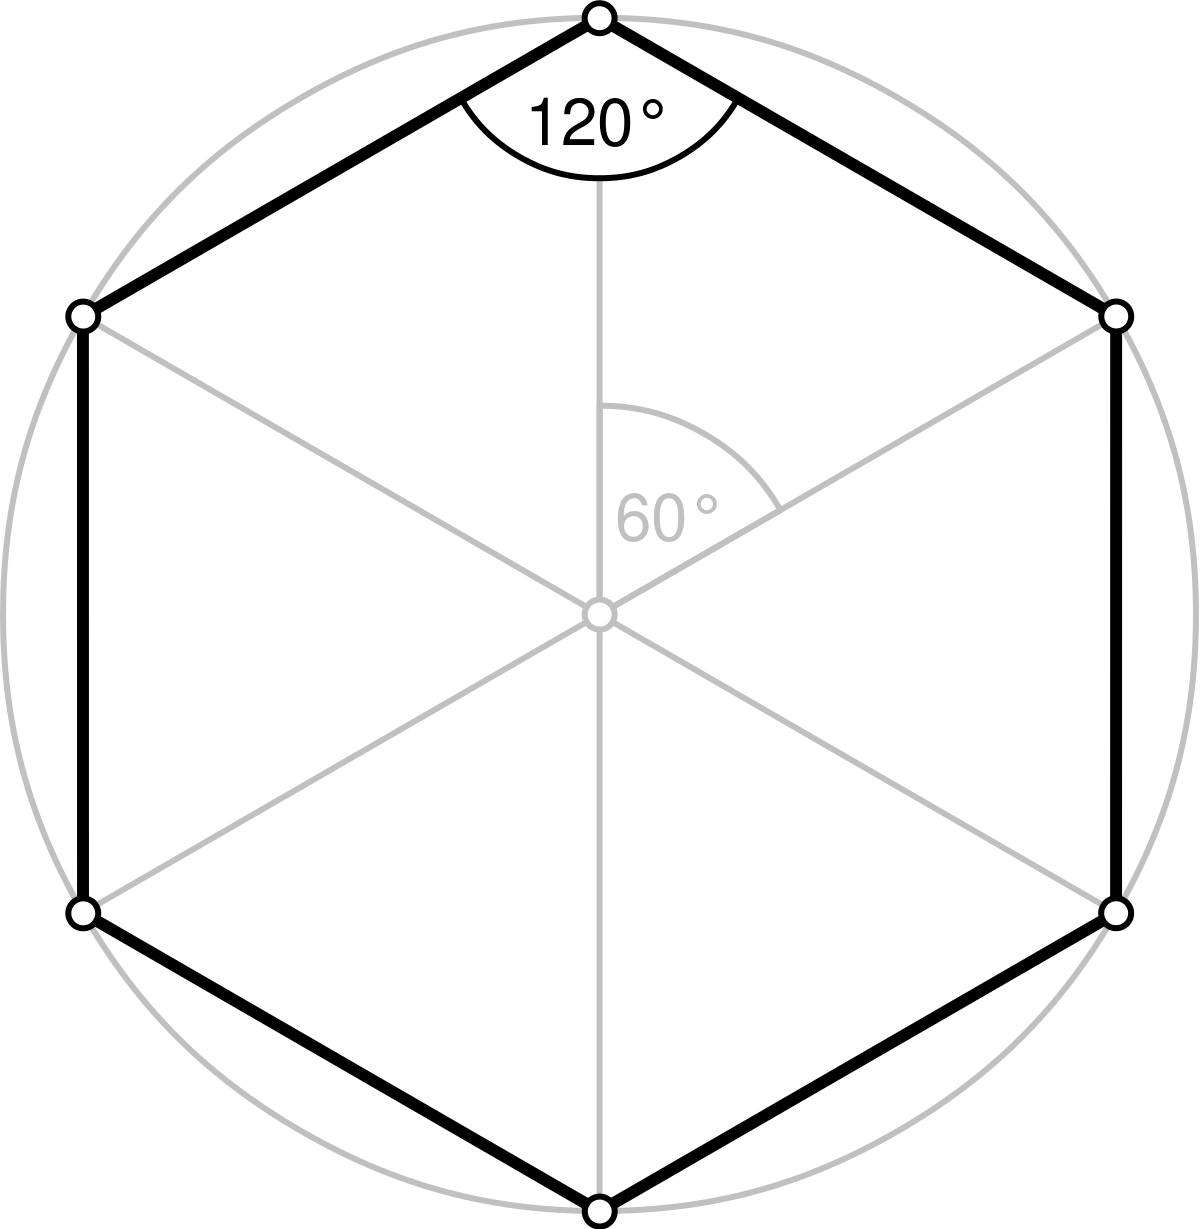 1200px-Regular_polygon_6_annotated.svg.png